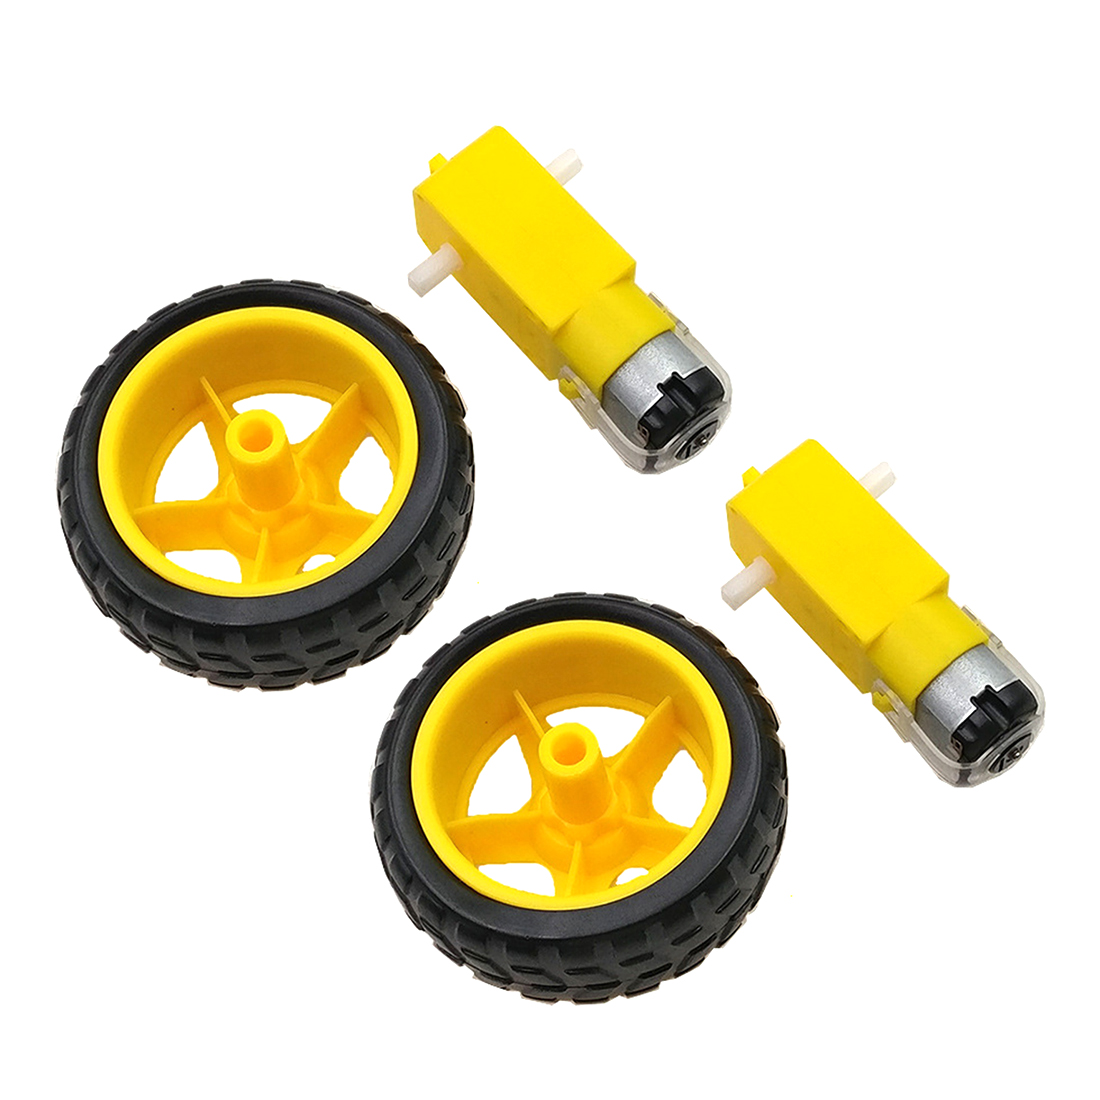 2Pcs Small Smart Car Tyres Wheel Robot Chassis Kit With DC Speed Reduction Motor For Children Kids Education Toys Birthday Gift